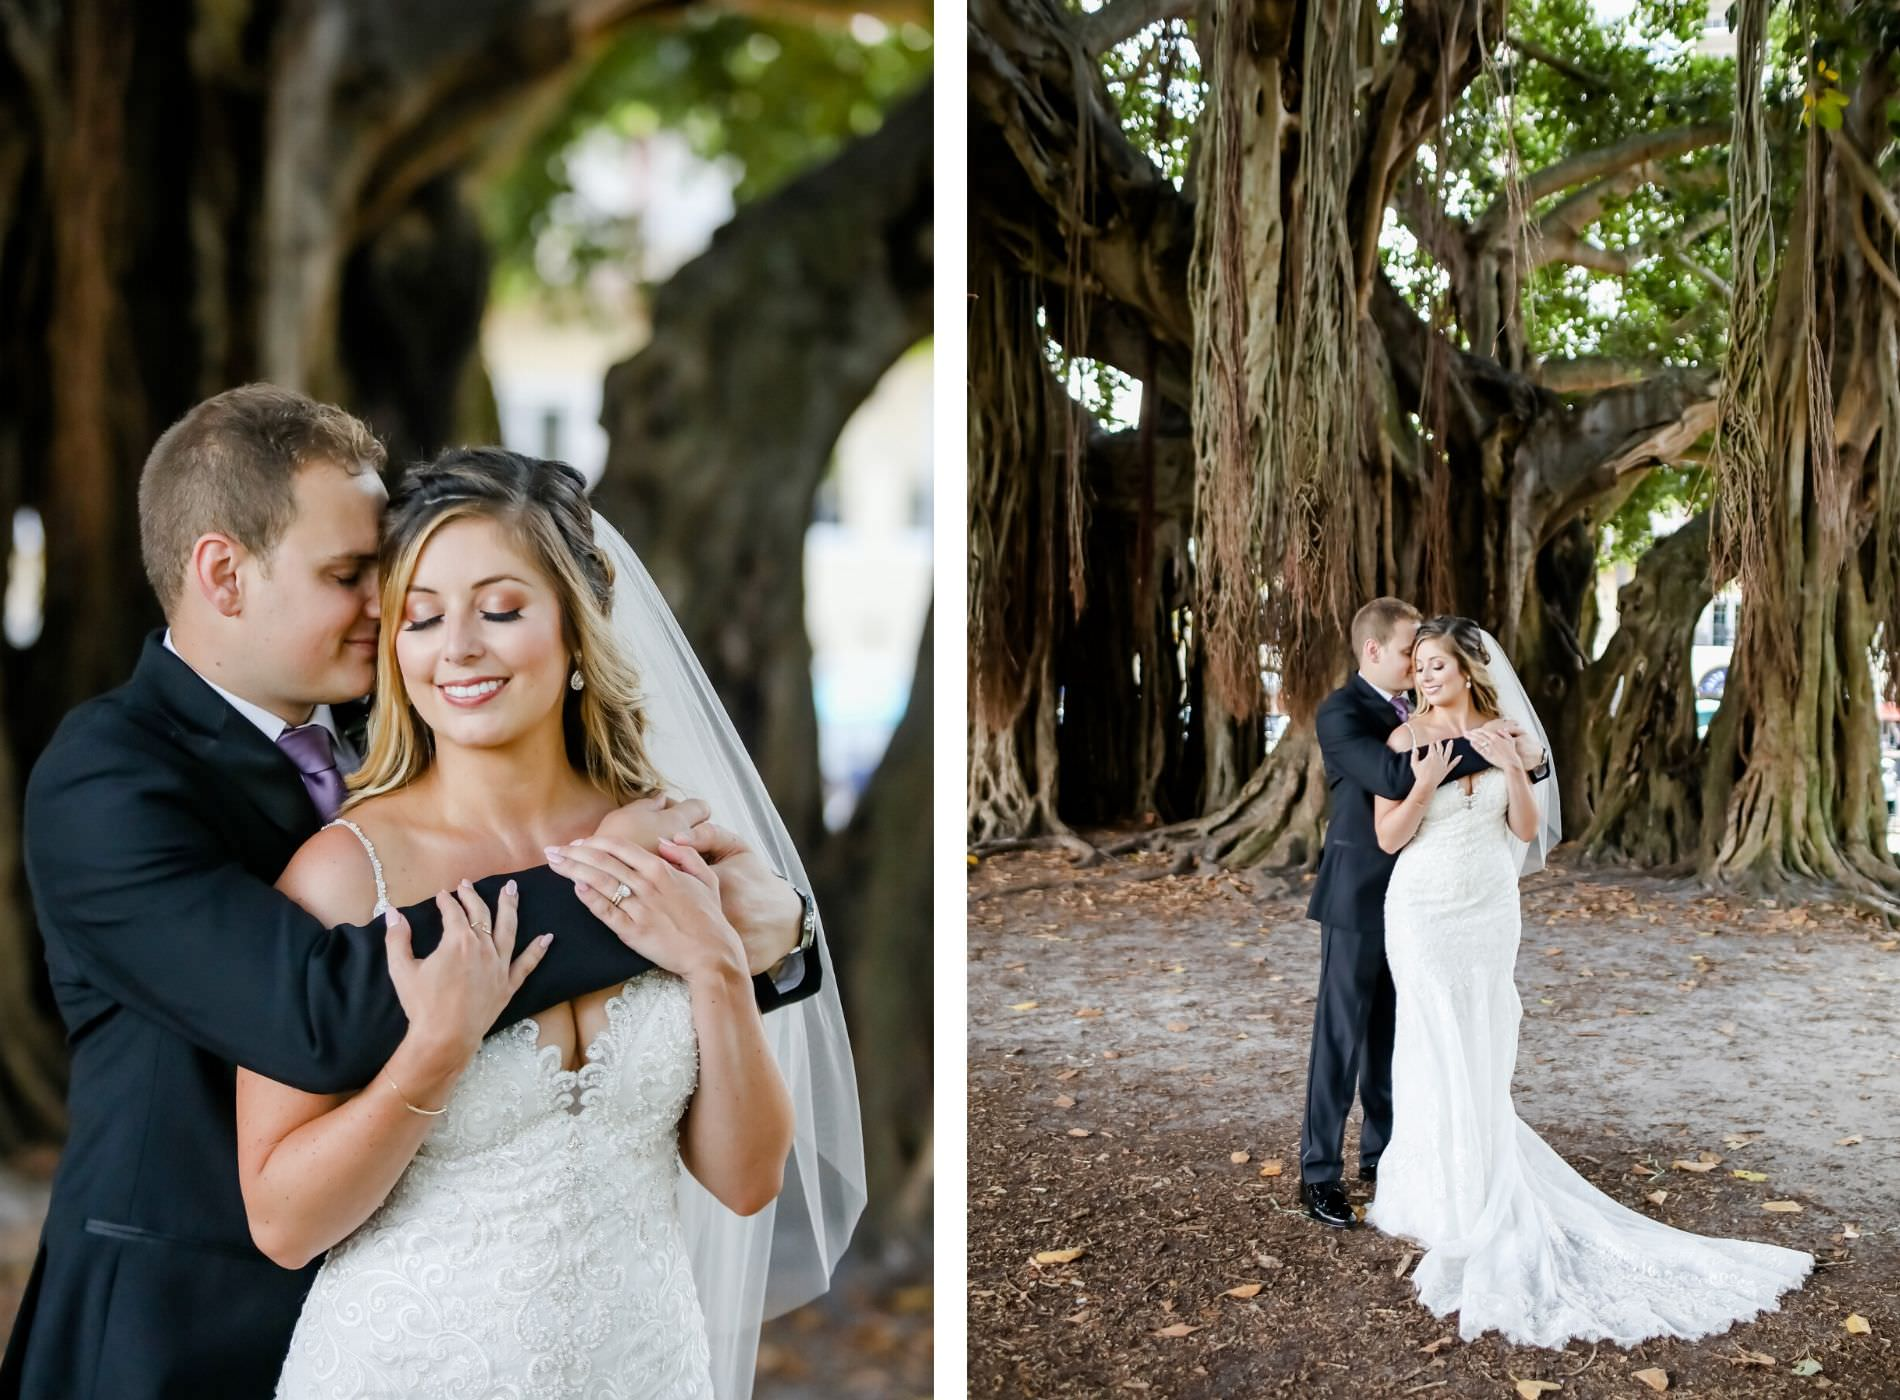 Florida Bride and Groom Embrace In Front of Banyan Trees in Staub Park Downtown St. Petersburg   Tampa Bay Hair and Makeup Artist Michele Renee The Studio   Florida Wedding Photographer Lifelong Photography Studio